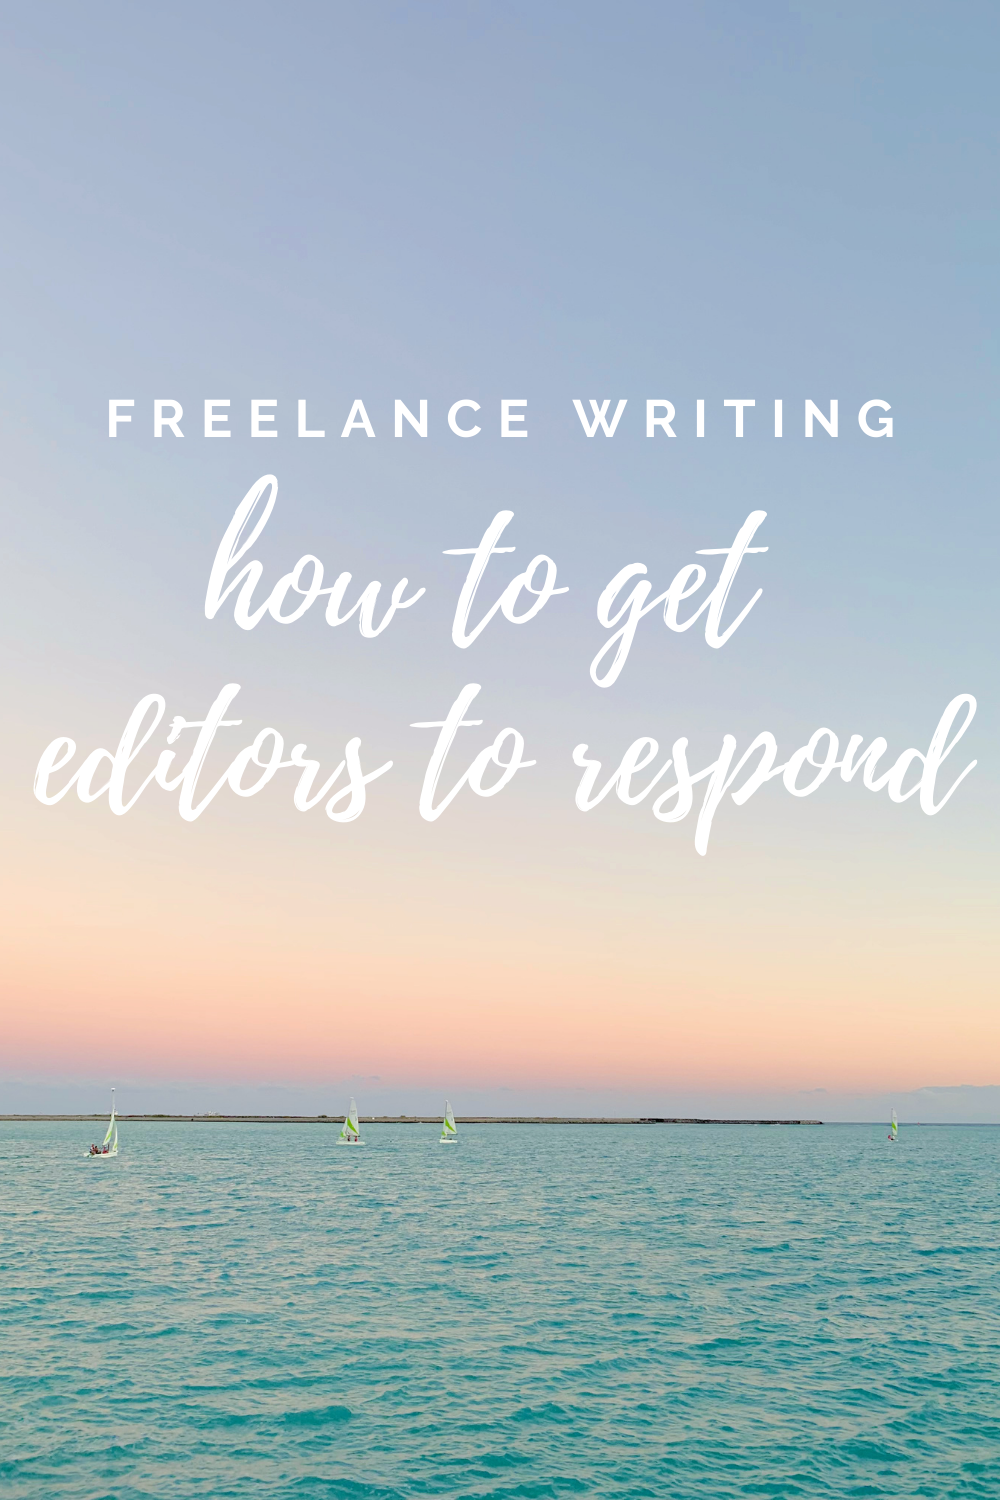 Freelance Writing: How To Get Editors To Respond - Are you looking for freelance writing jobs? Here are my best tips for getting a response from editors!